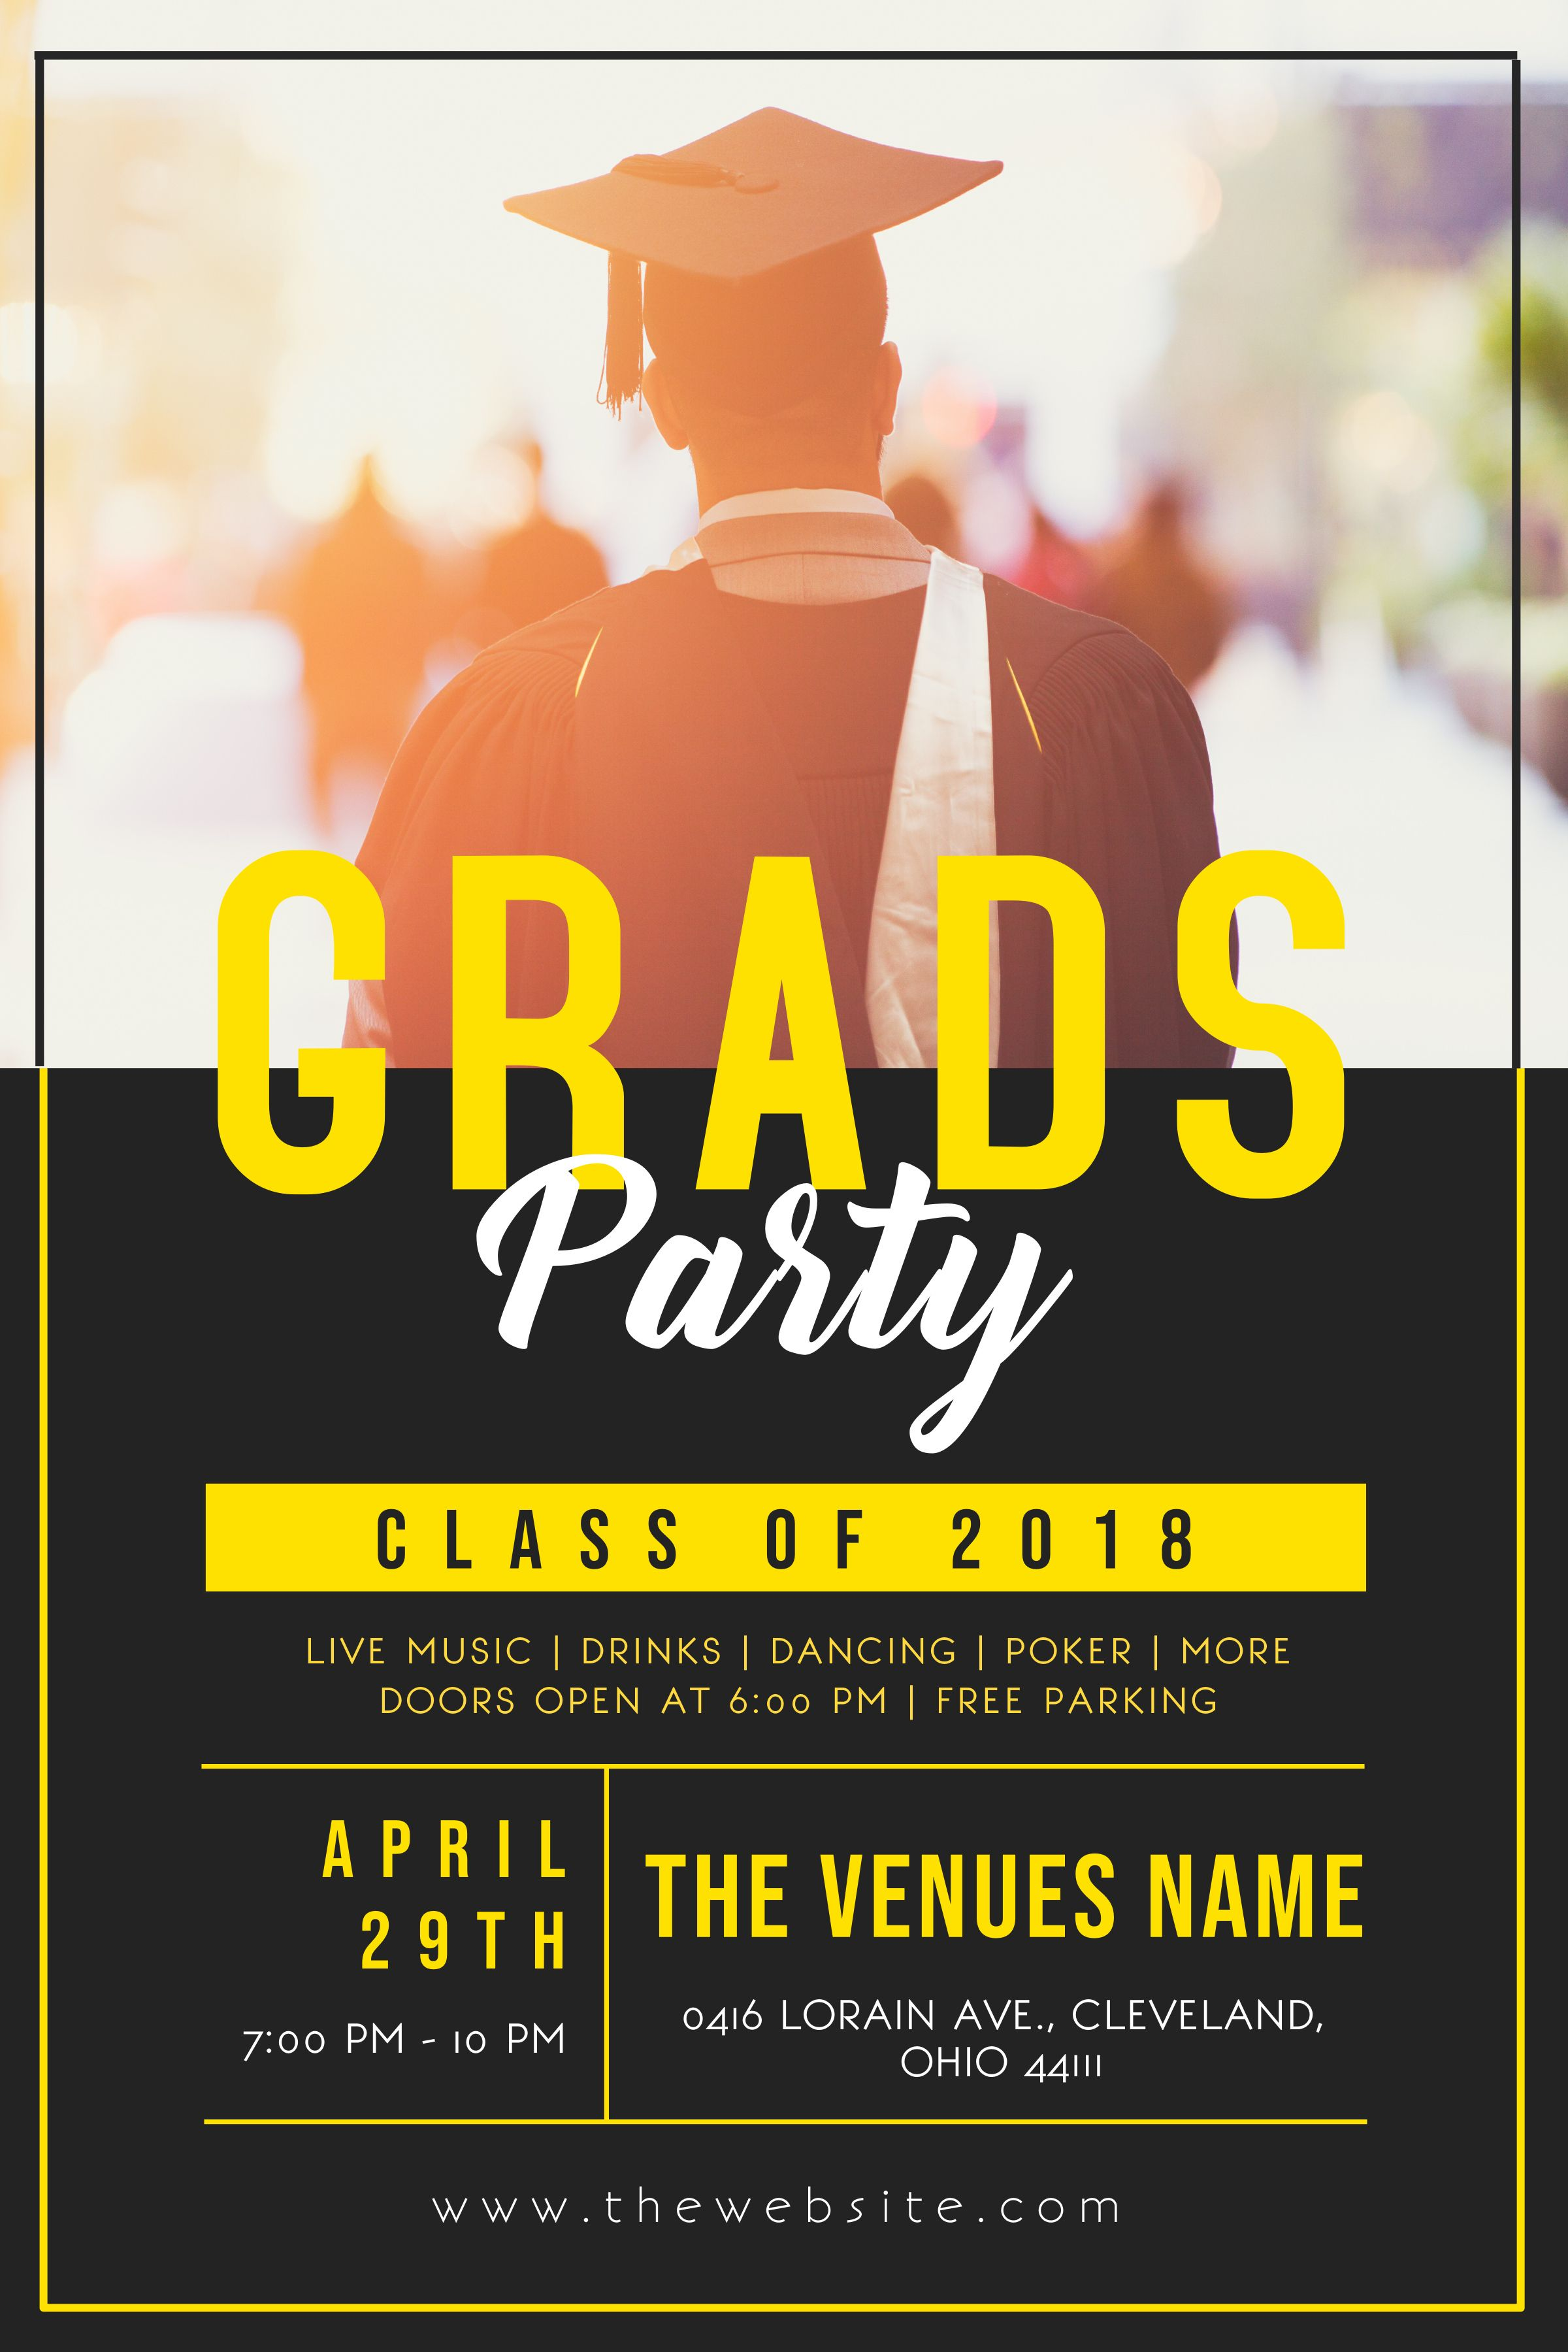 Grad party invitation flyer poster template.  Graduation party